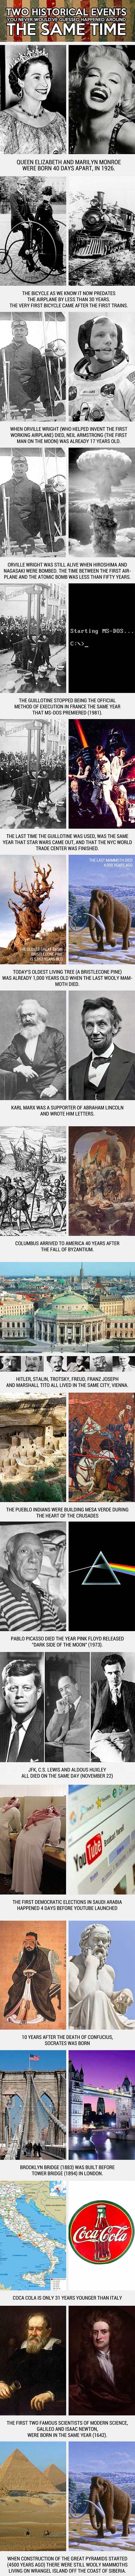 Here are some interesting examples of historical events that happened around the same time.